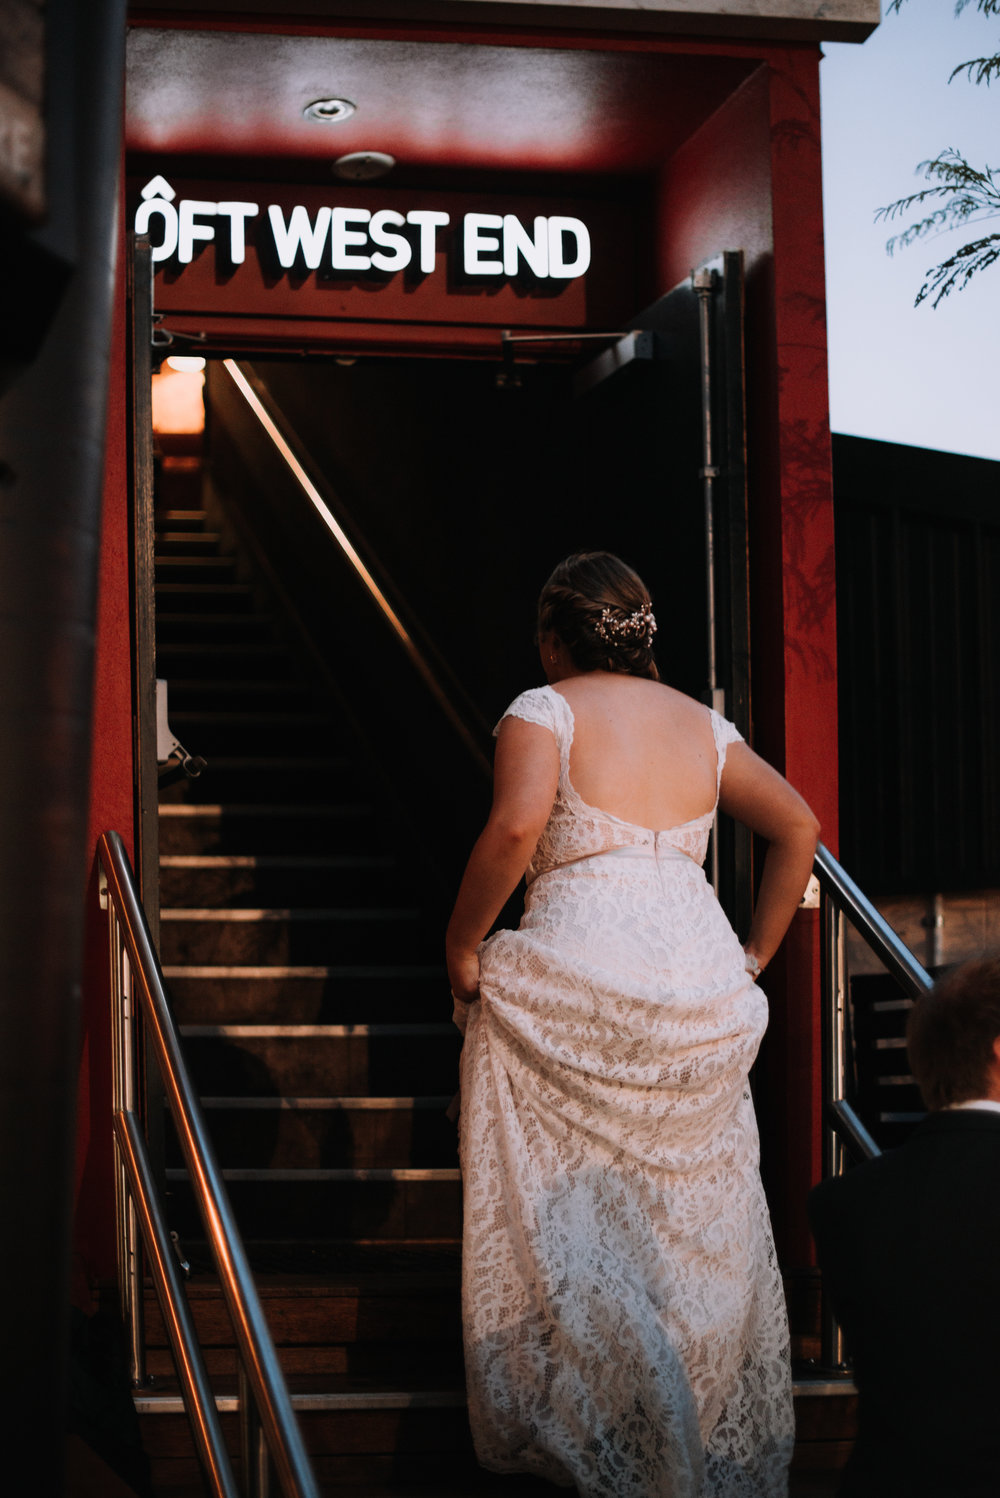 LOVELENSCAPES WEDDING PHOTOGRAPHY • VISUAL POETRY • LOFT WEST END WEDDING BRISBANE • AUSTRALIAN WEDDING PHOTOGRAPHER